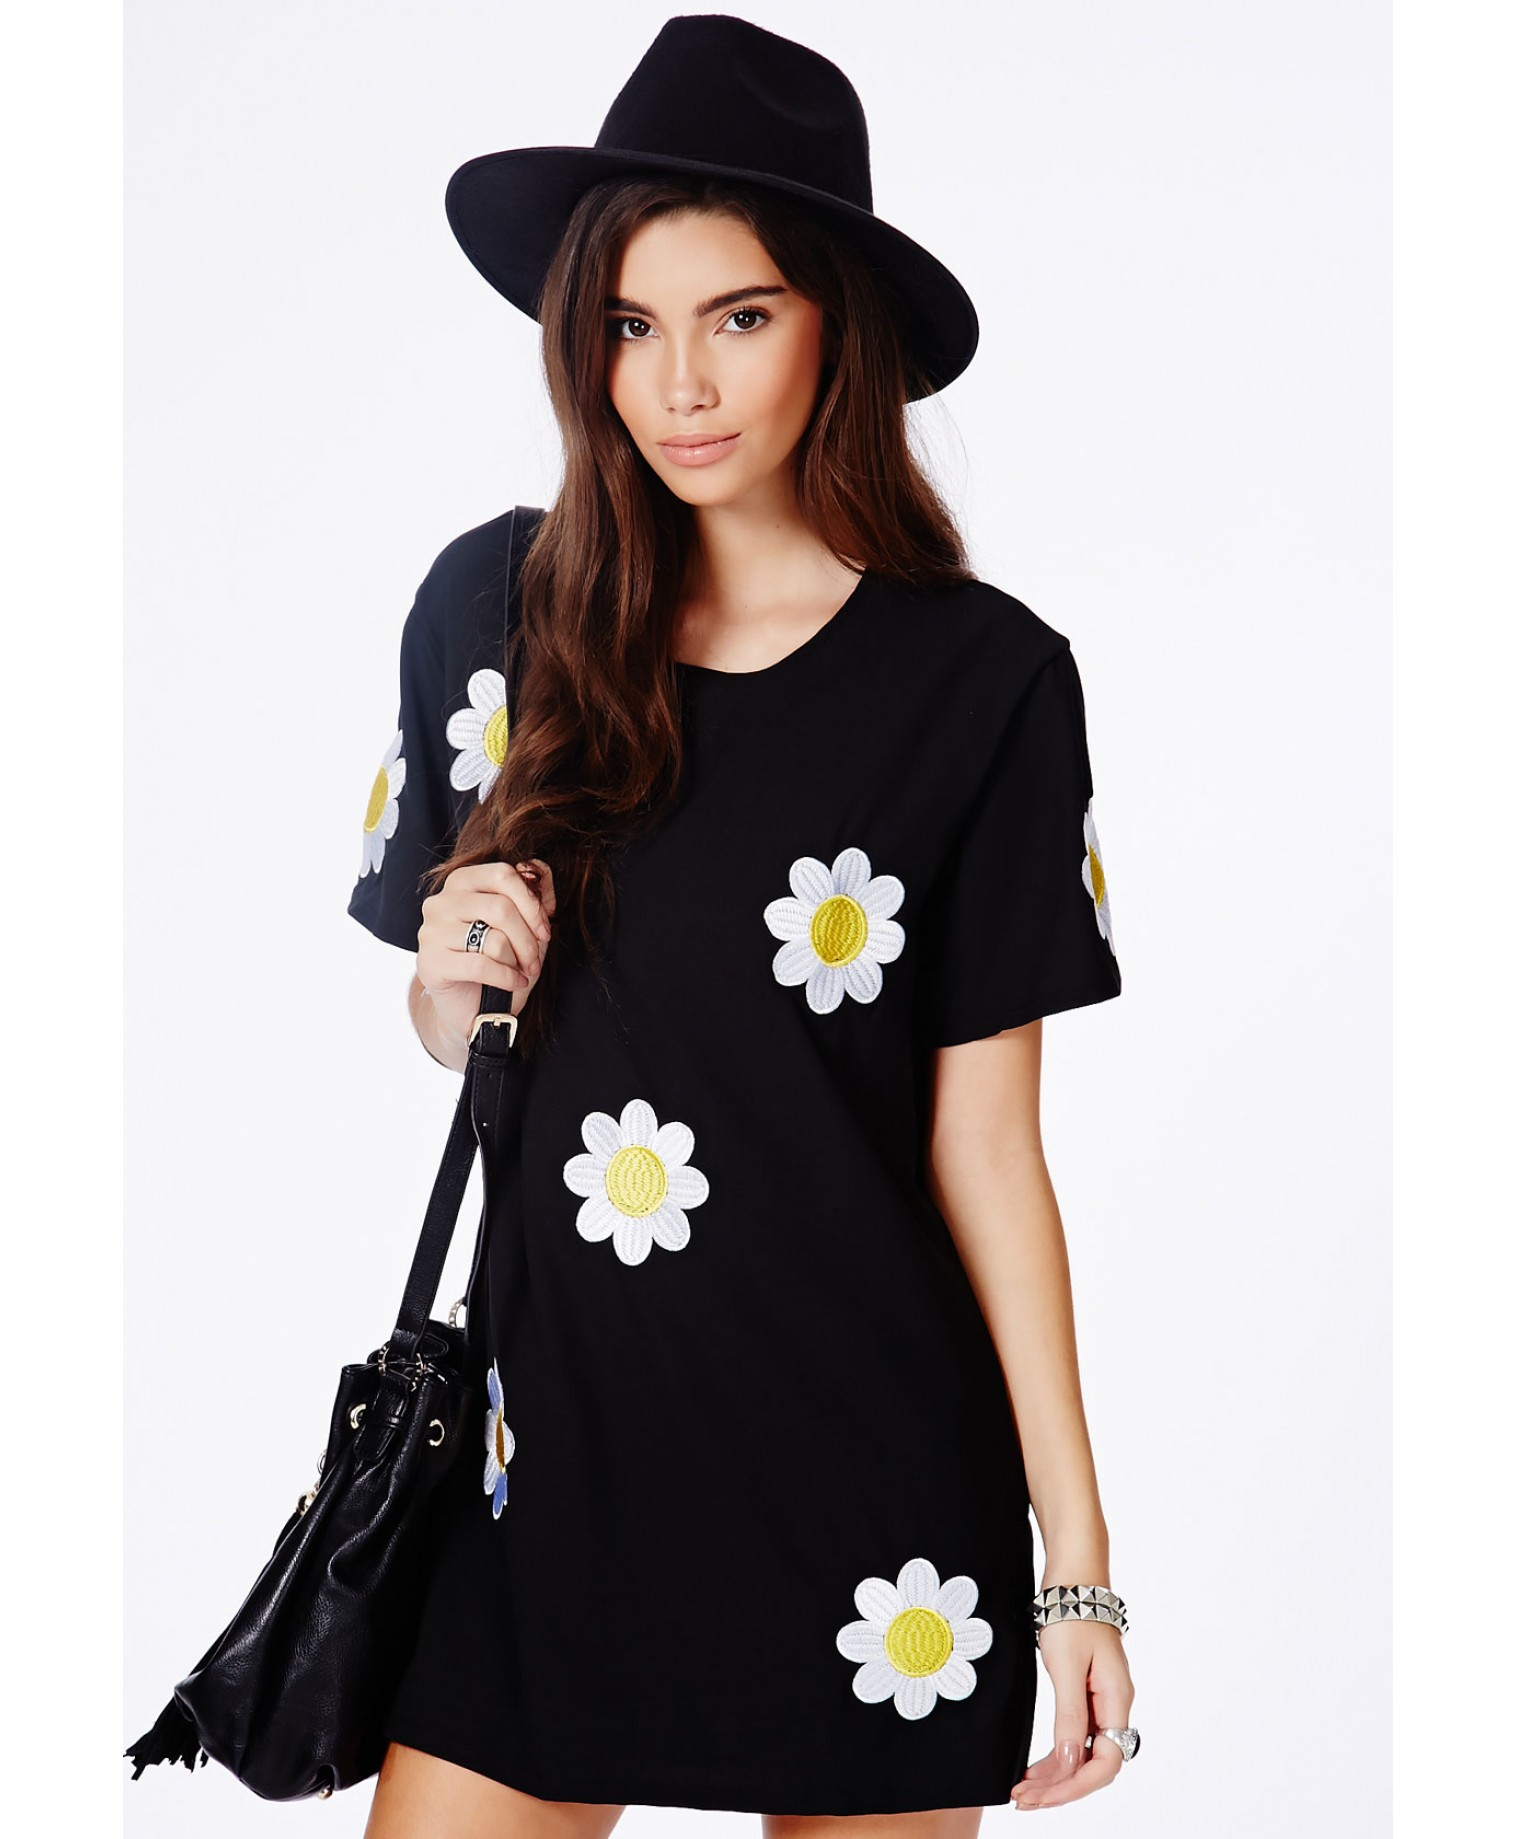 Calanta black oversized daisy shift dress 1